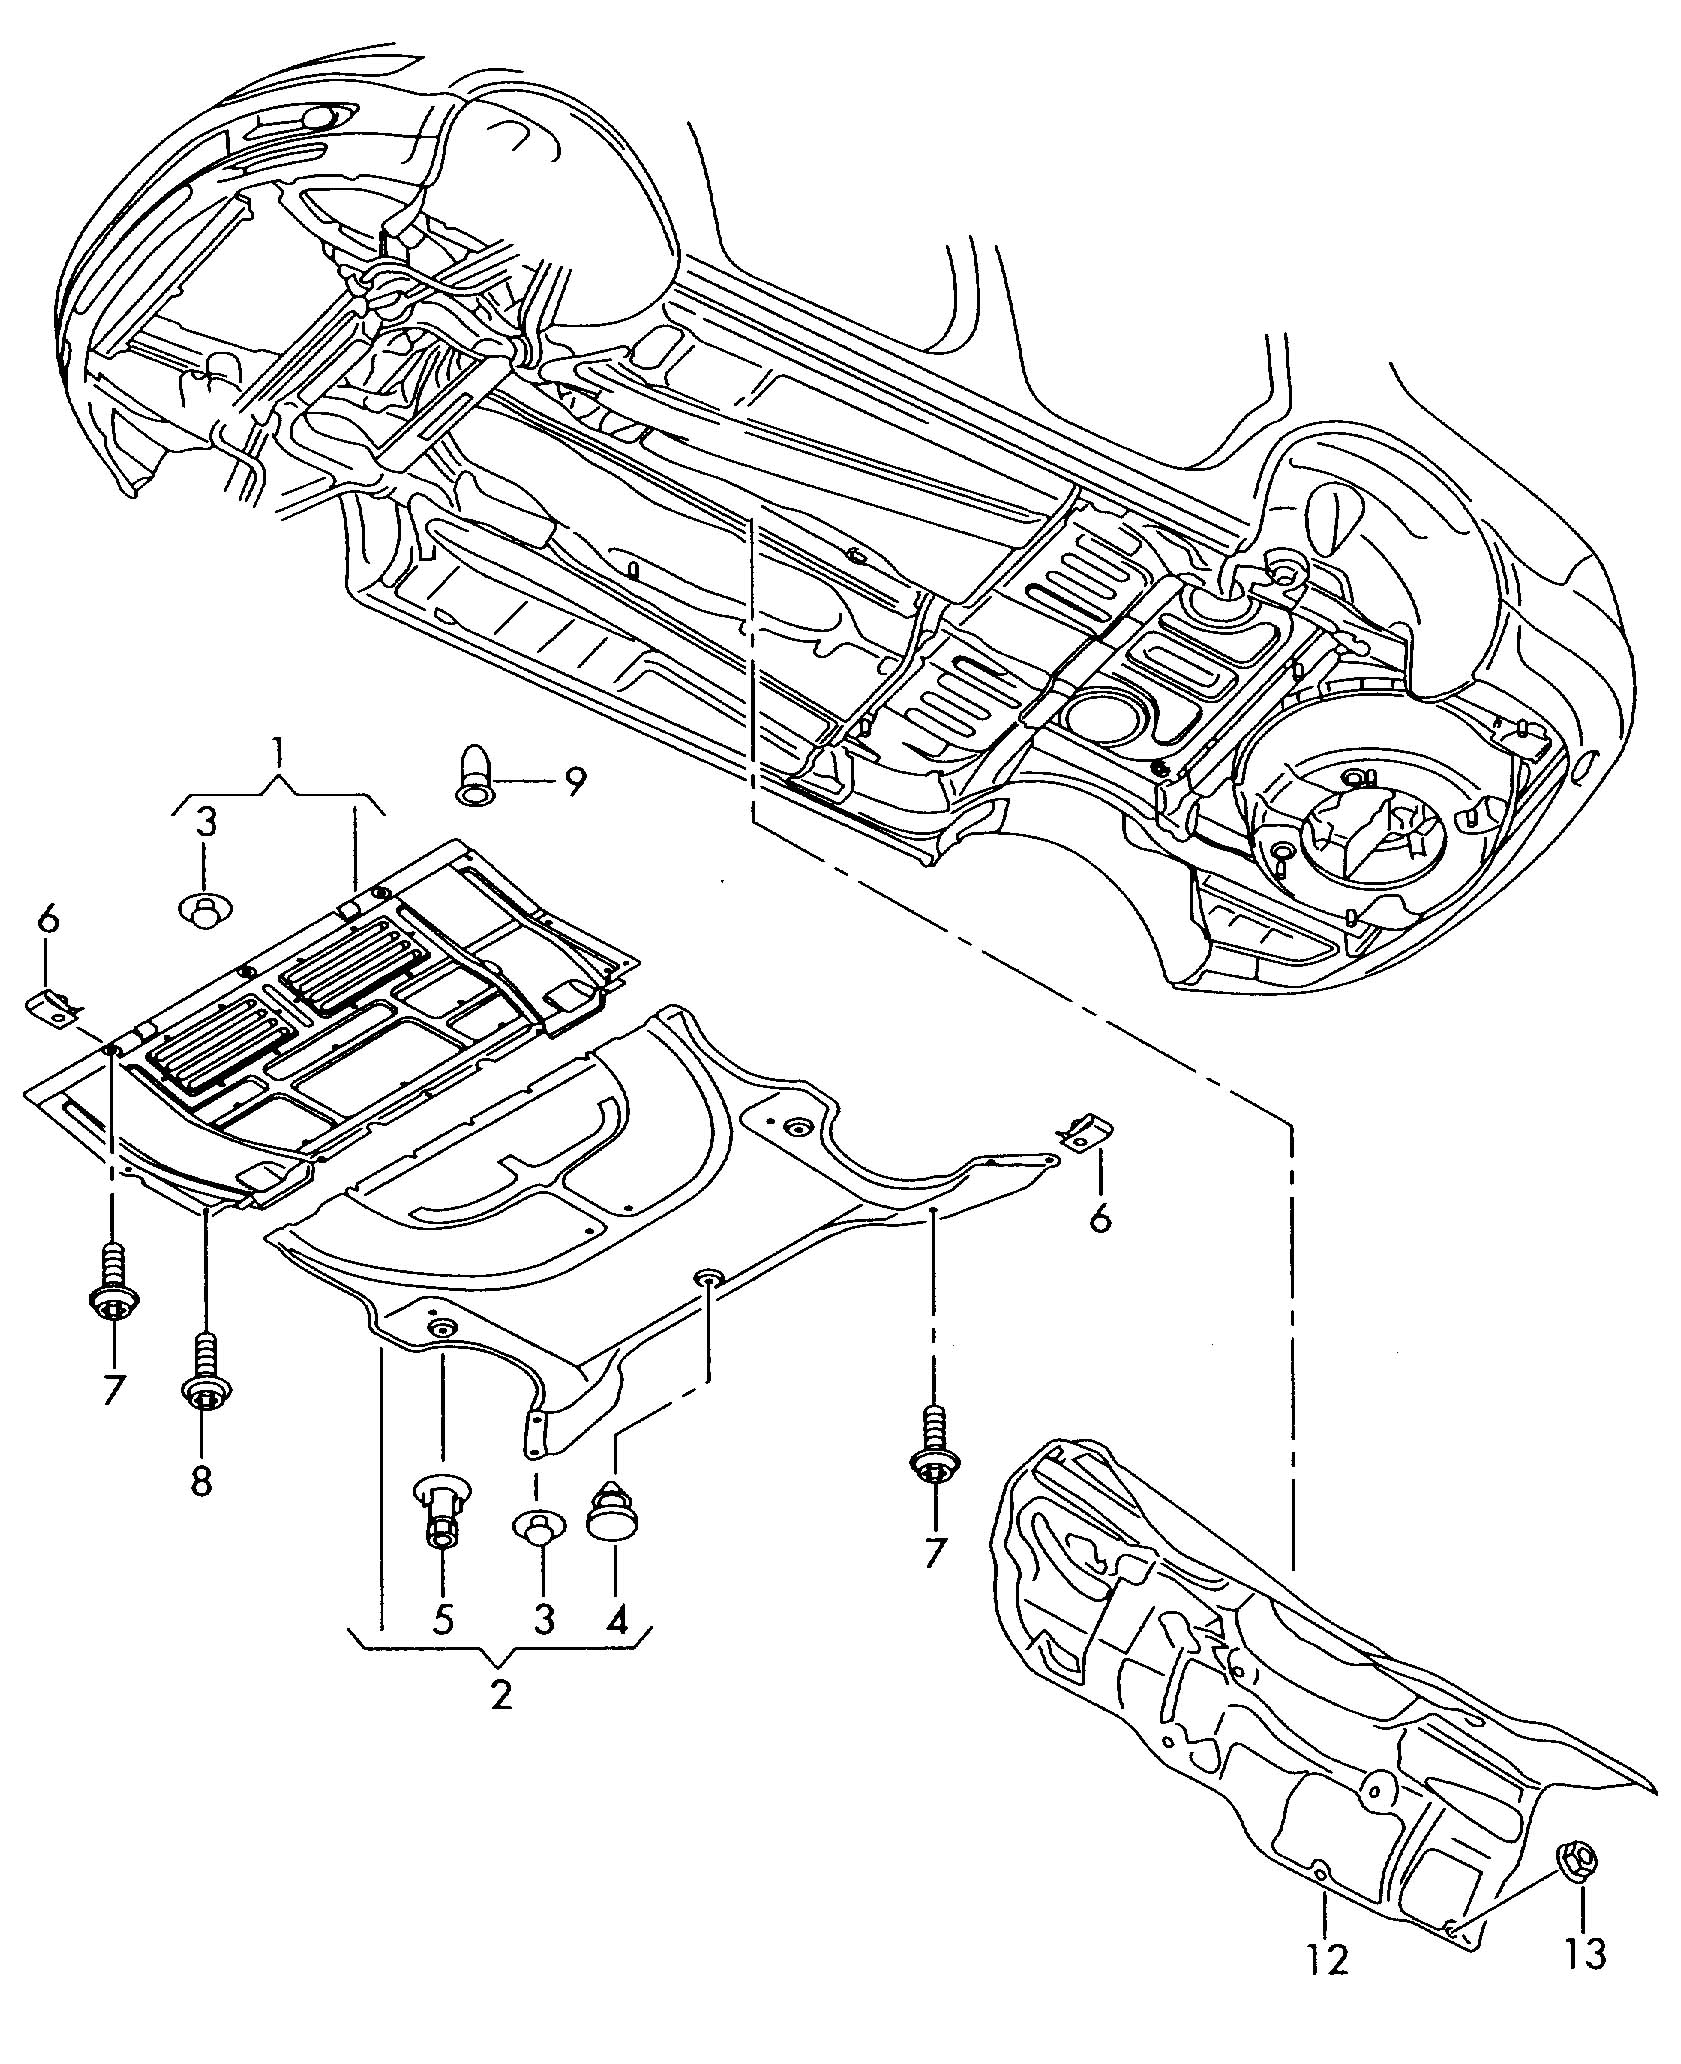 1998 vw cabrio wiring diagram